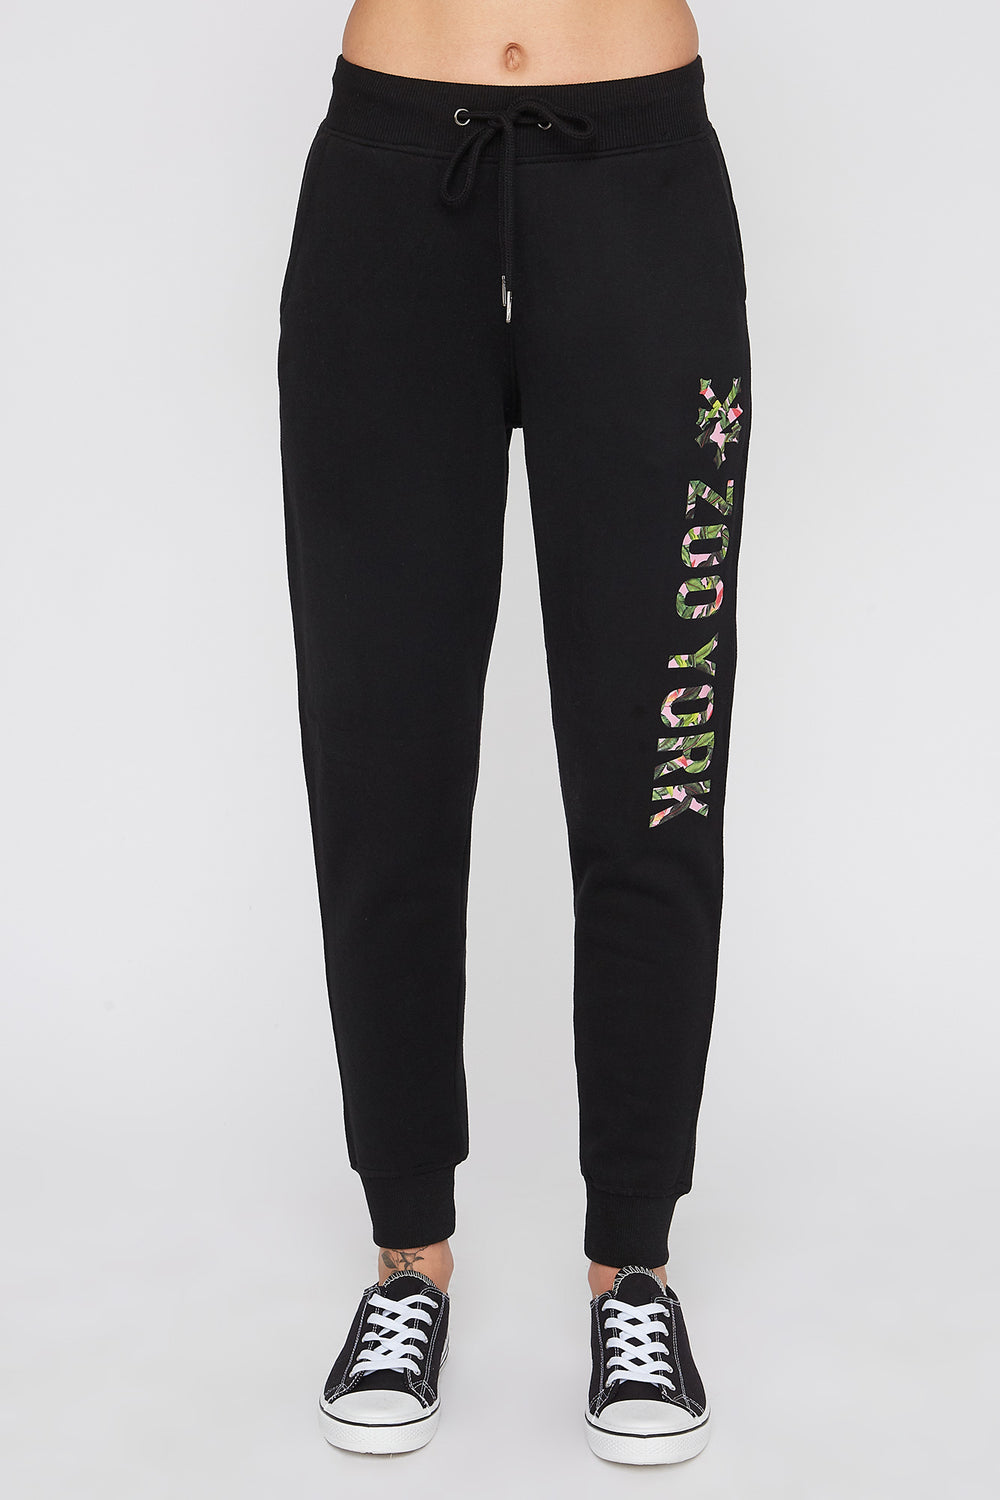 Zoo York Womens 3-Pocket Tropical Logo Joggers Black